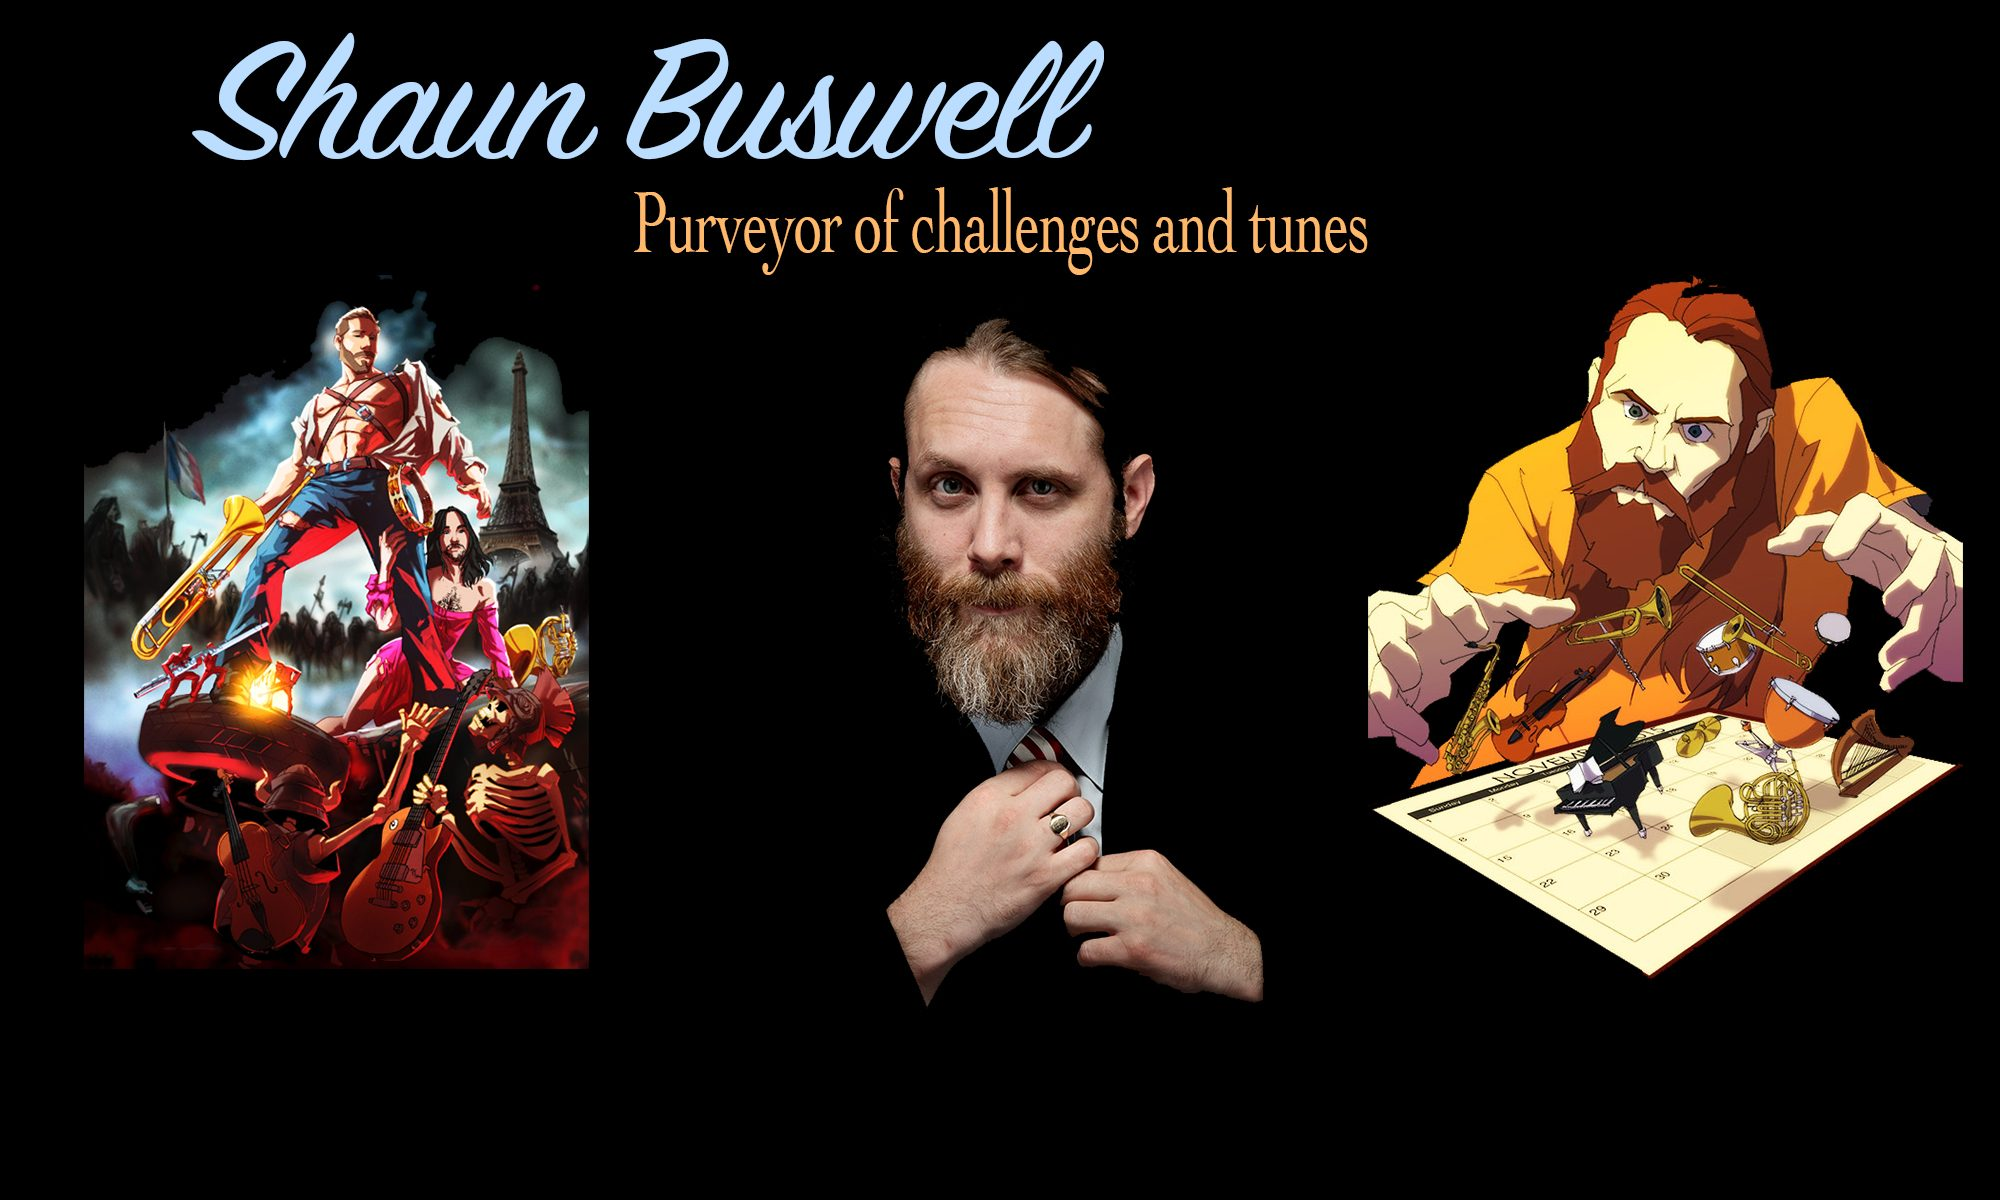 Buswell music